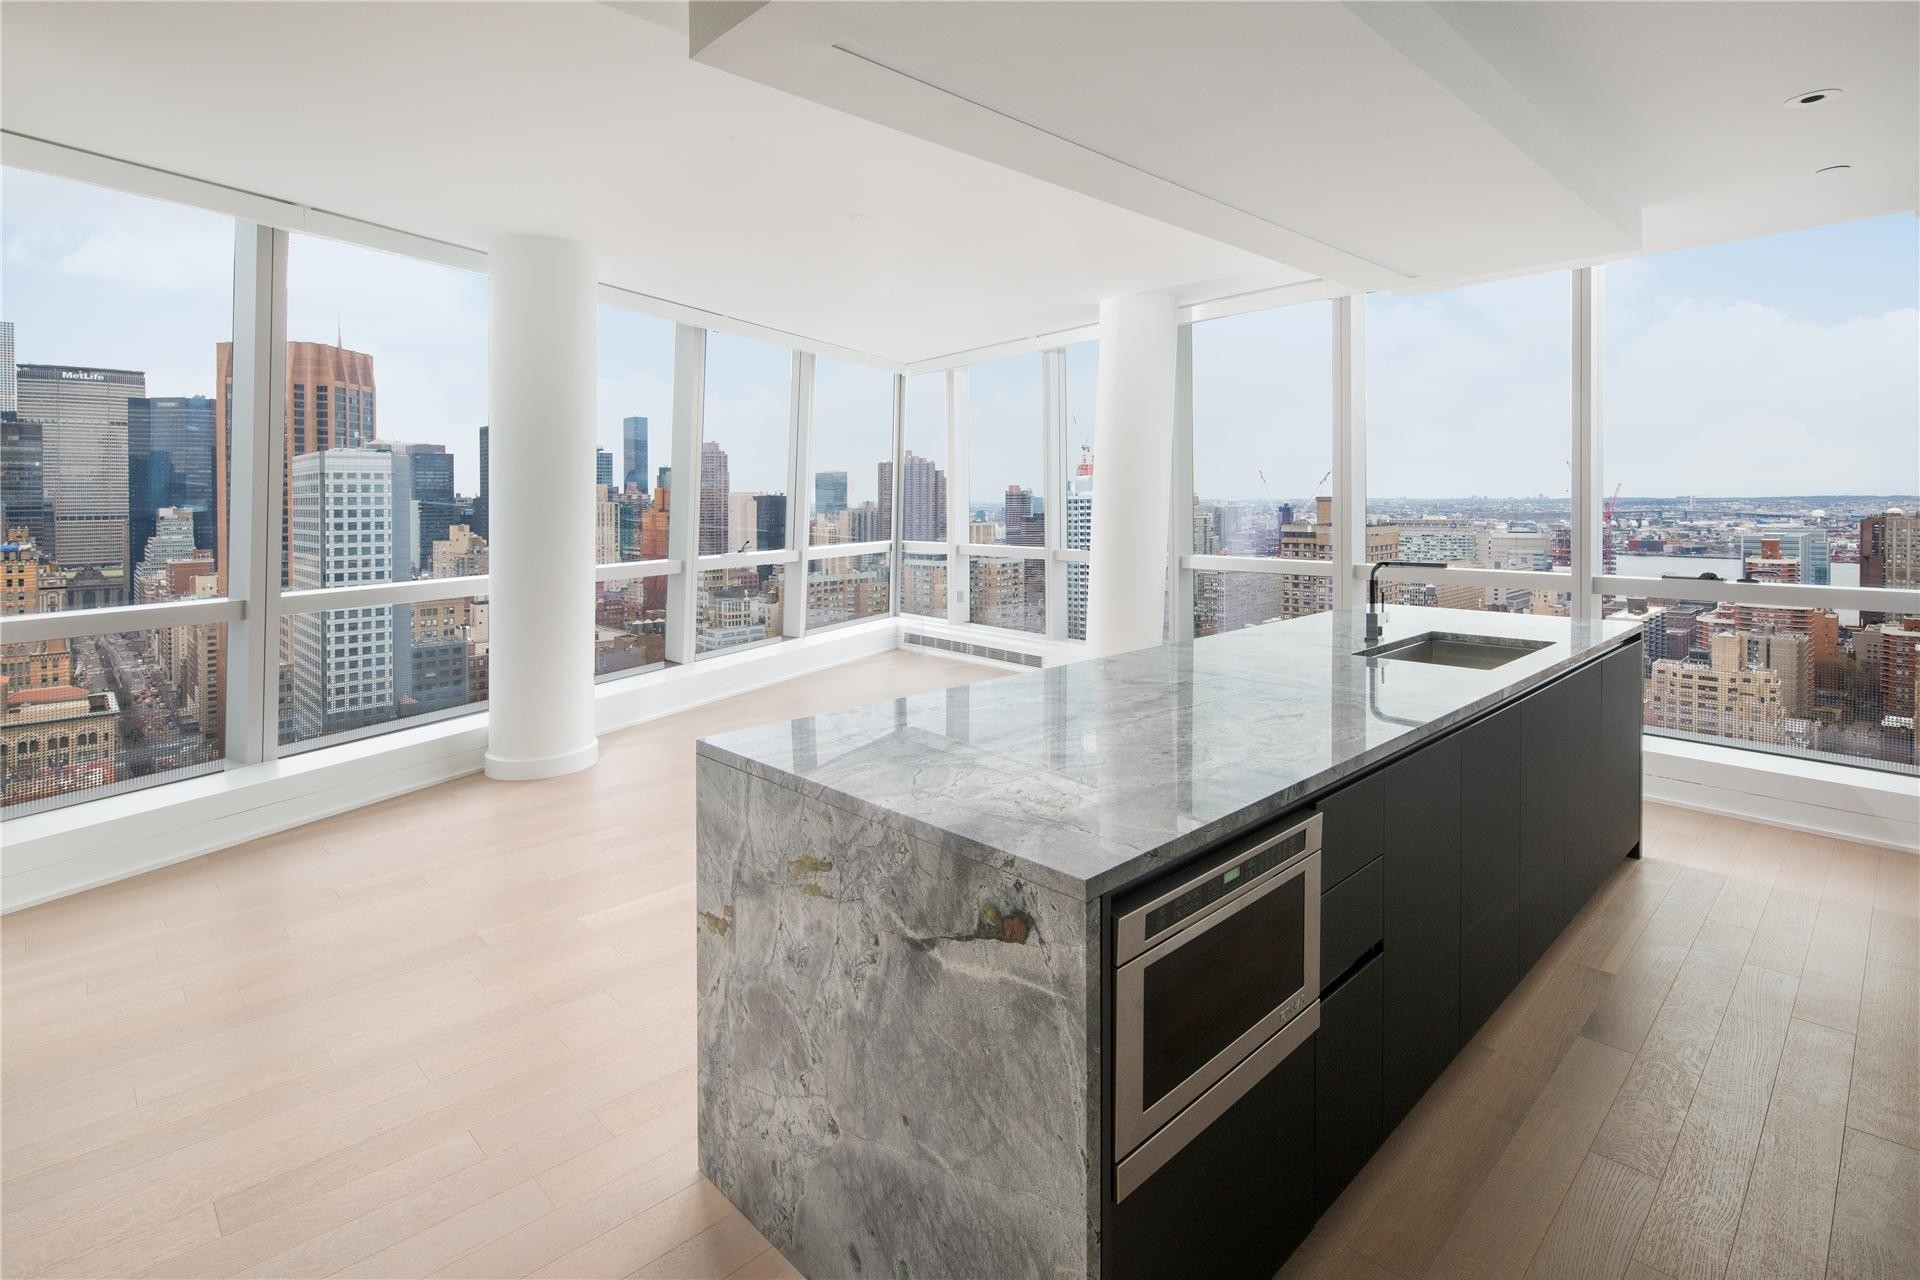 Property at 400 Park Avenue South, 35B New York